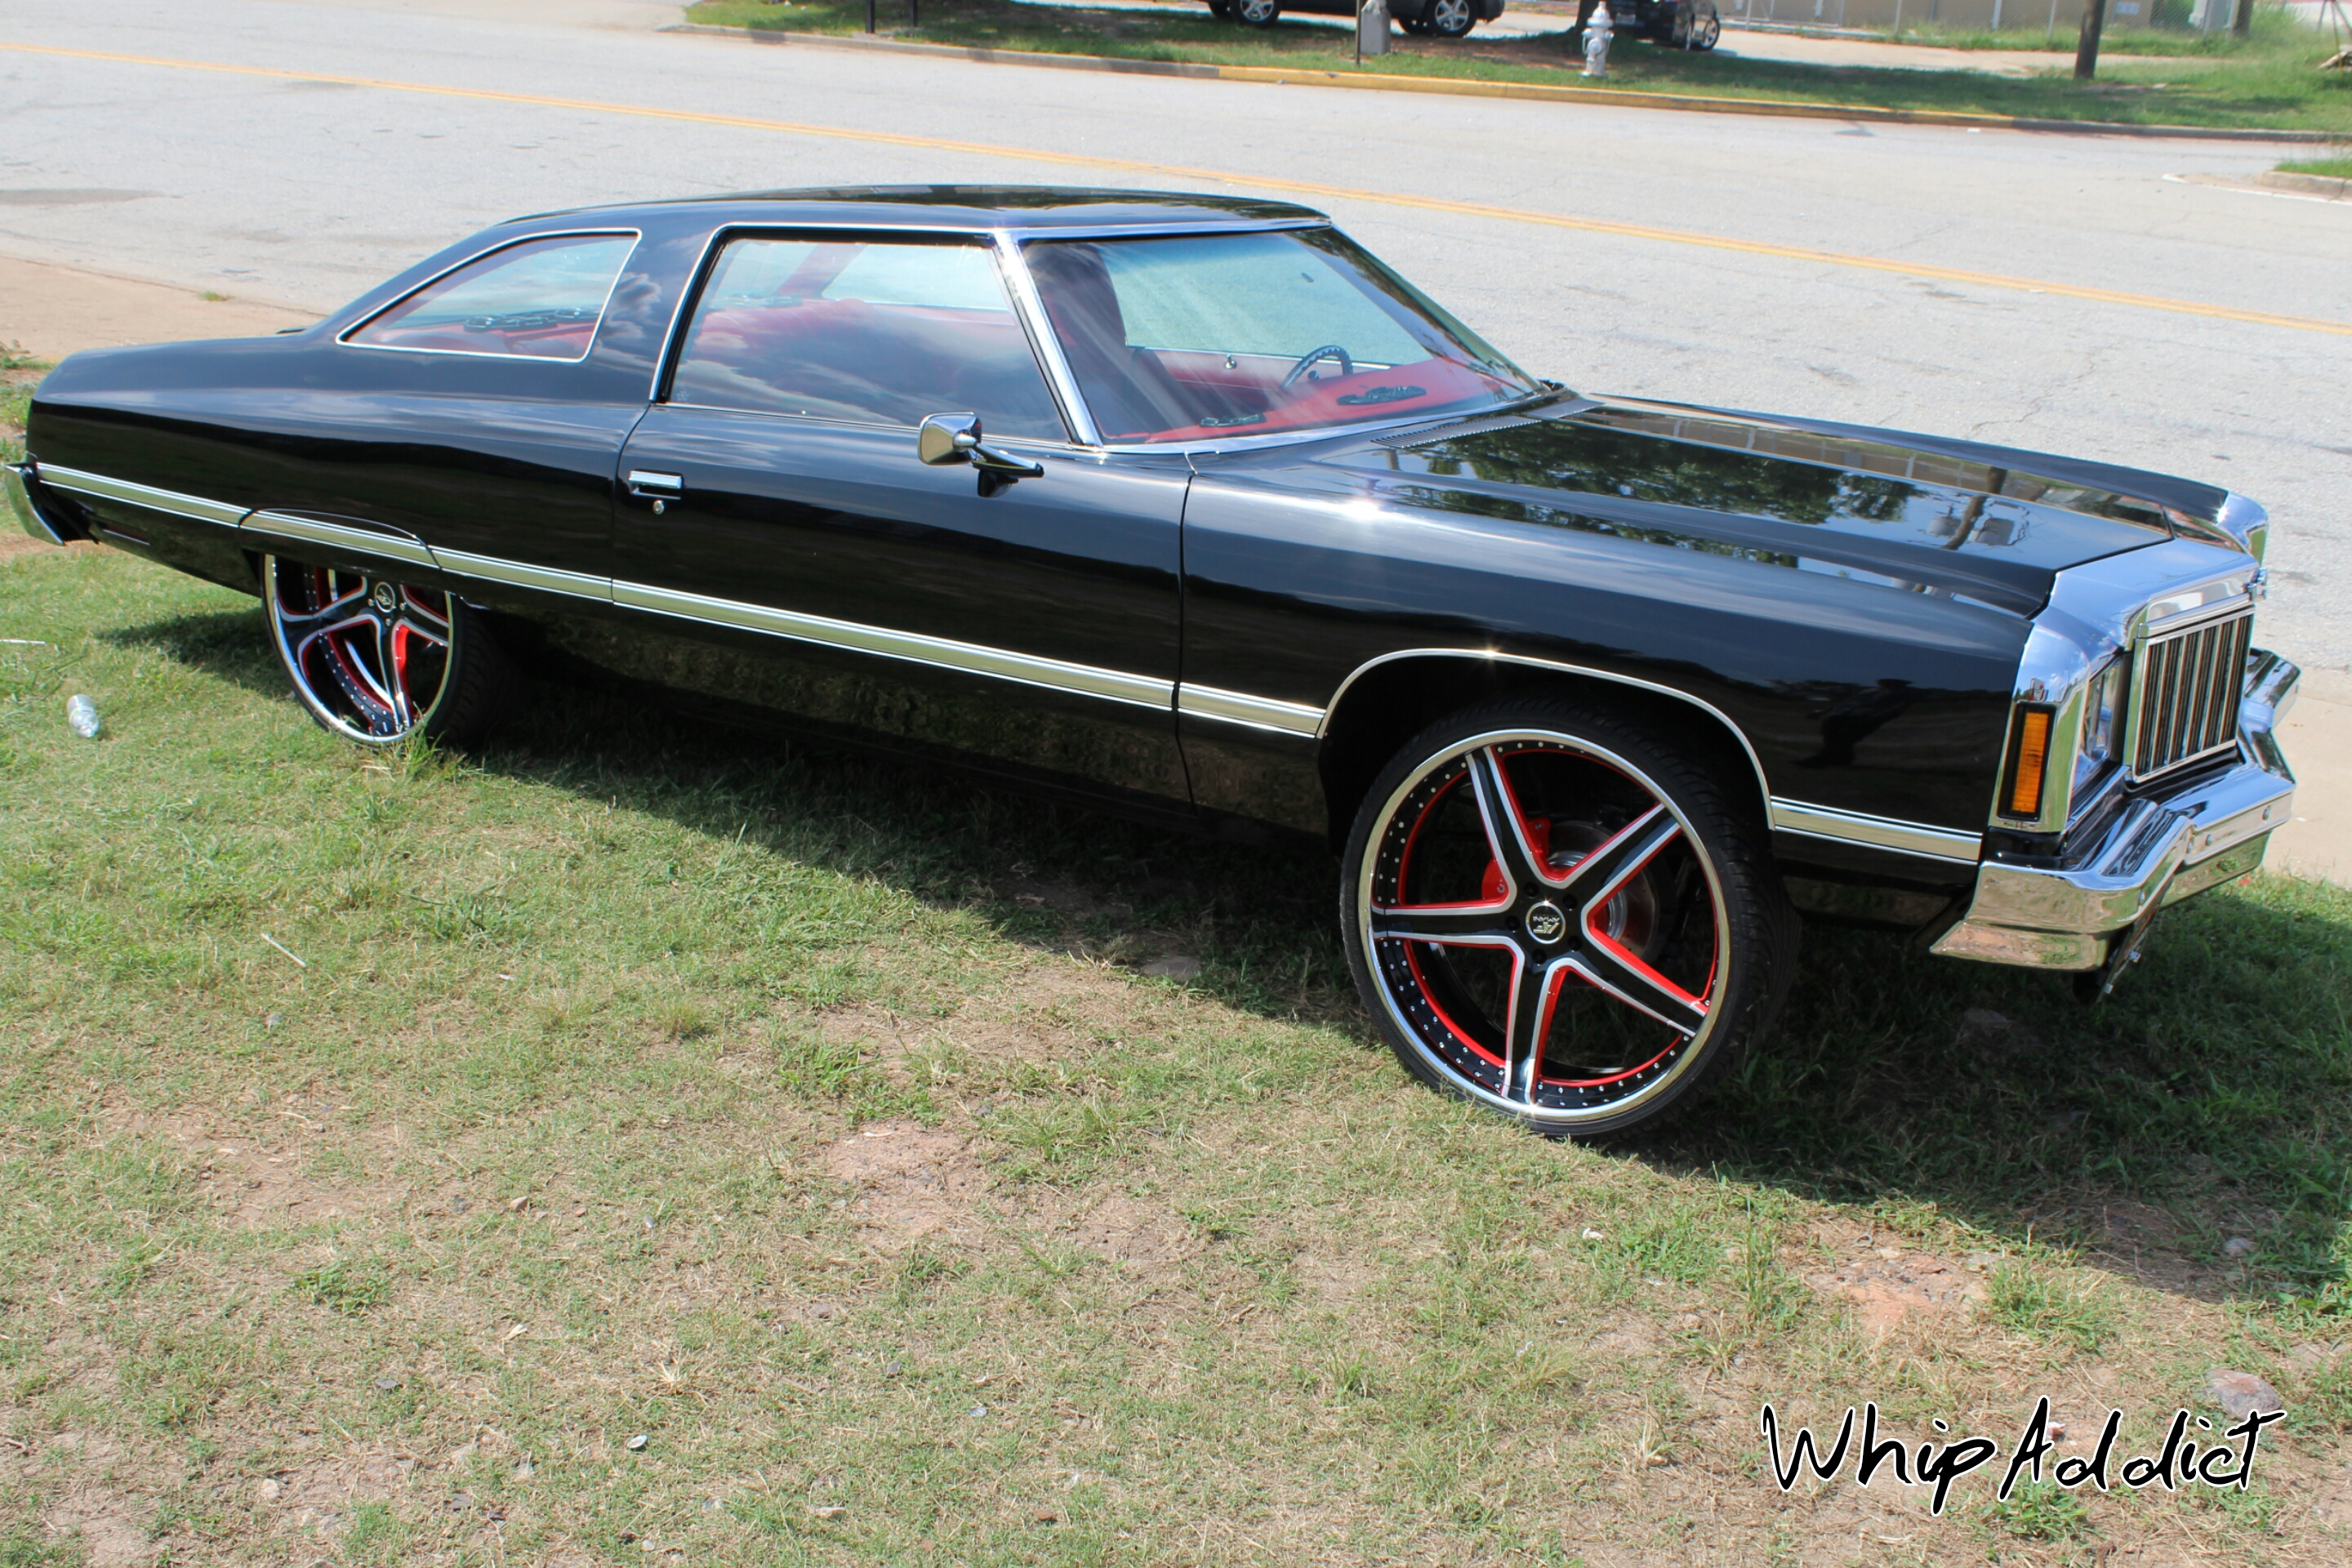 1974 Chevrolet Caprice | For Sale Friday - Rides Magazine